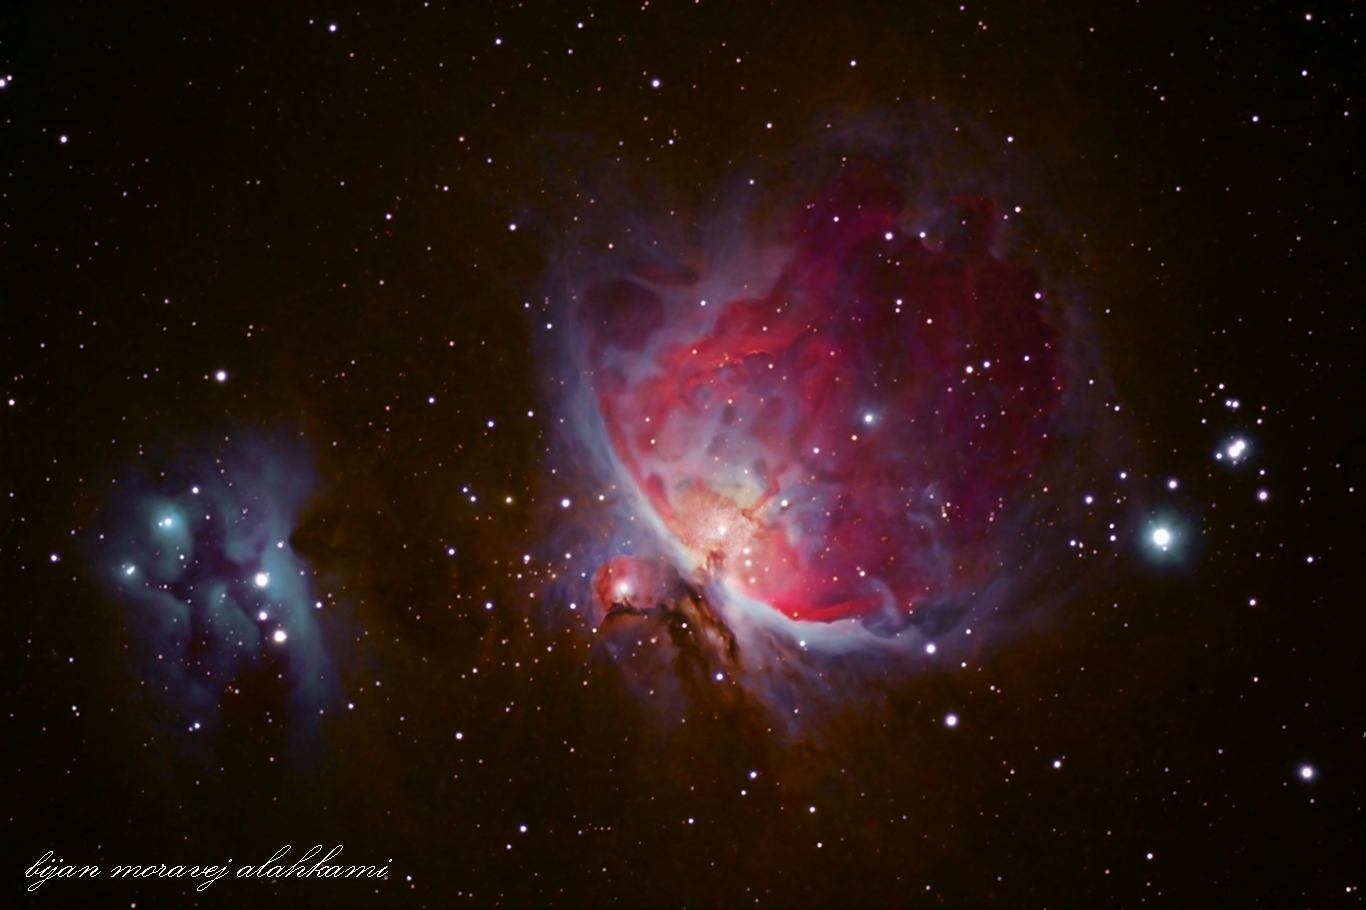 Orion Nebula m42 &running man nebula